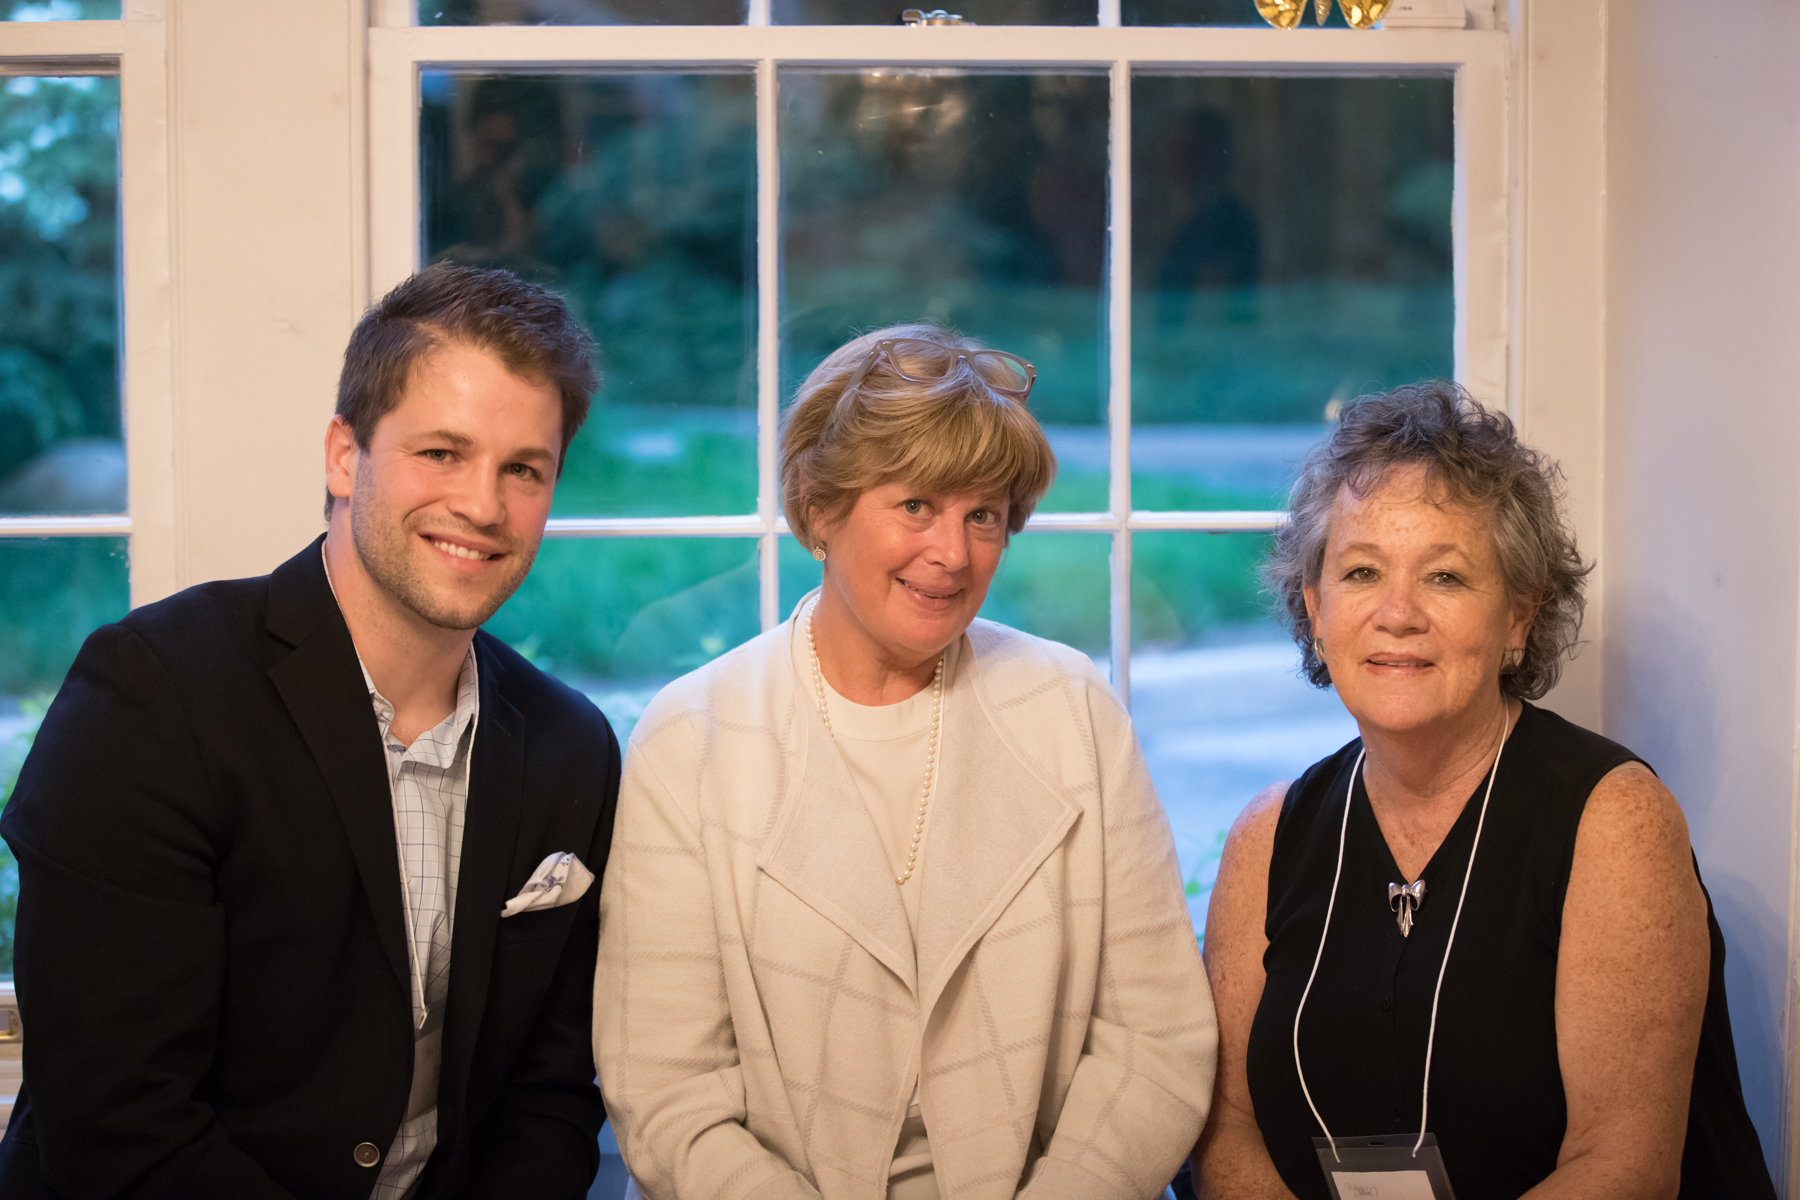 Ryan Derfler, from the Chester County Press, with Barb Goetz (center) from Wild Thyme Flowers and Janet Dadds.